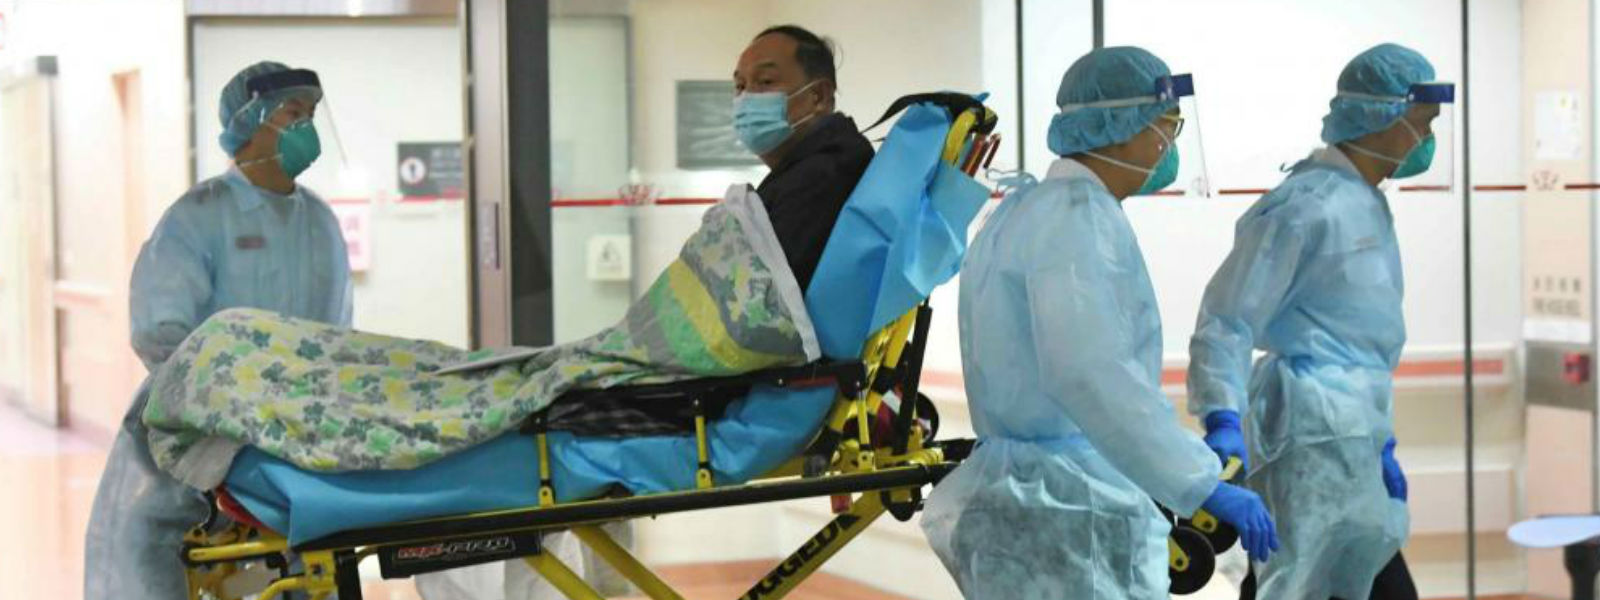 Coronavirus outbreak: 811 deaths, 37,000 affected patients